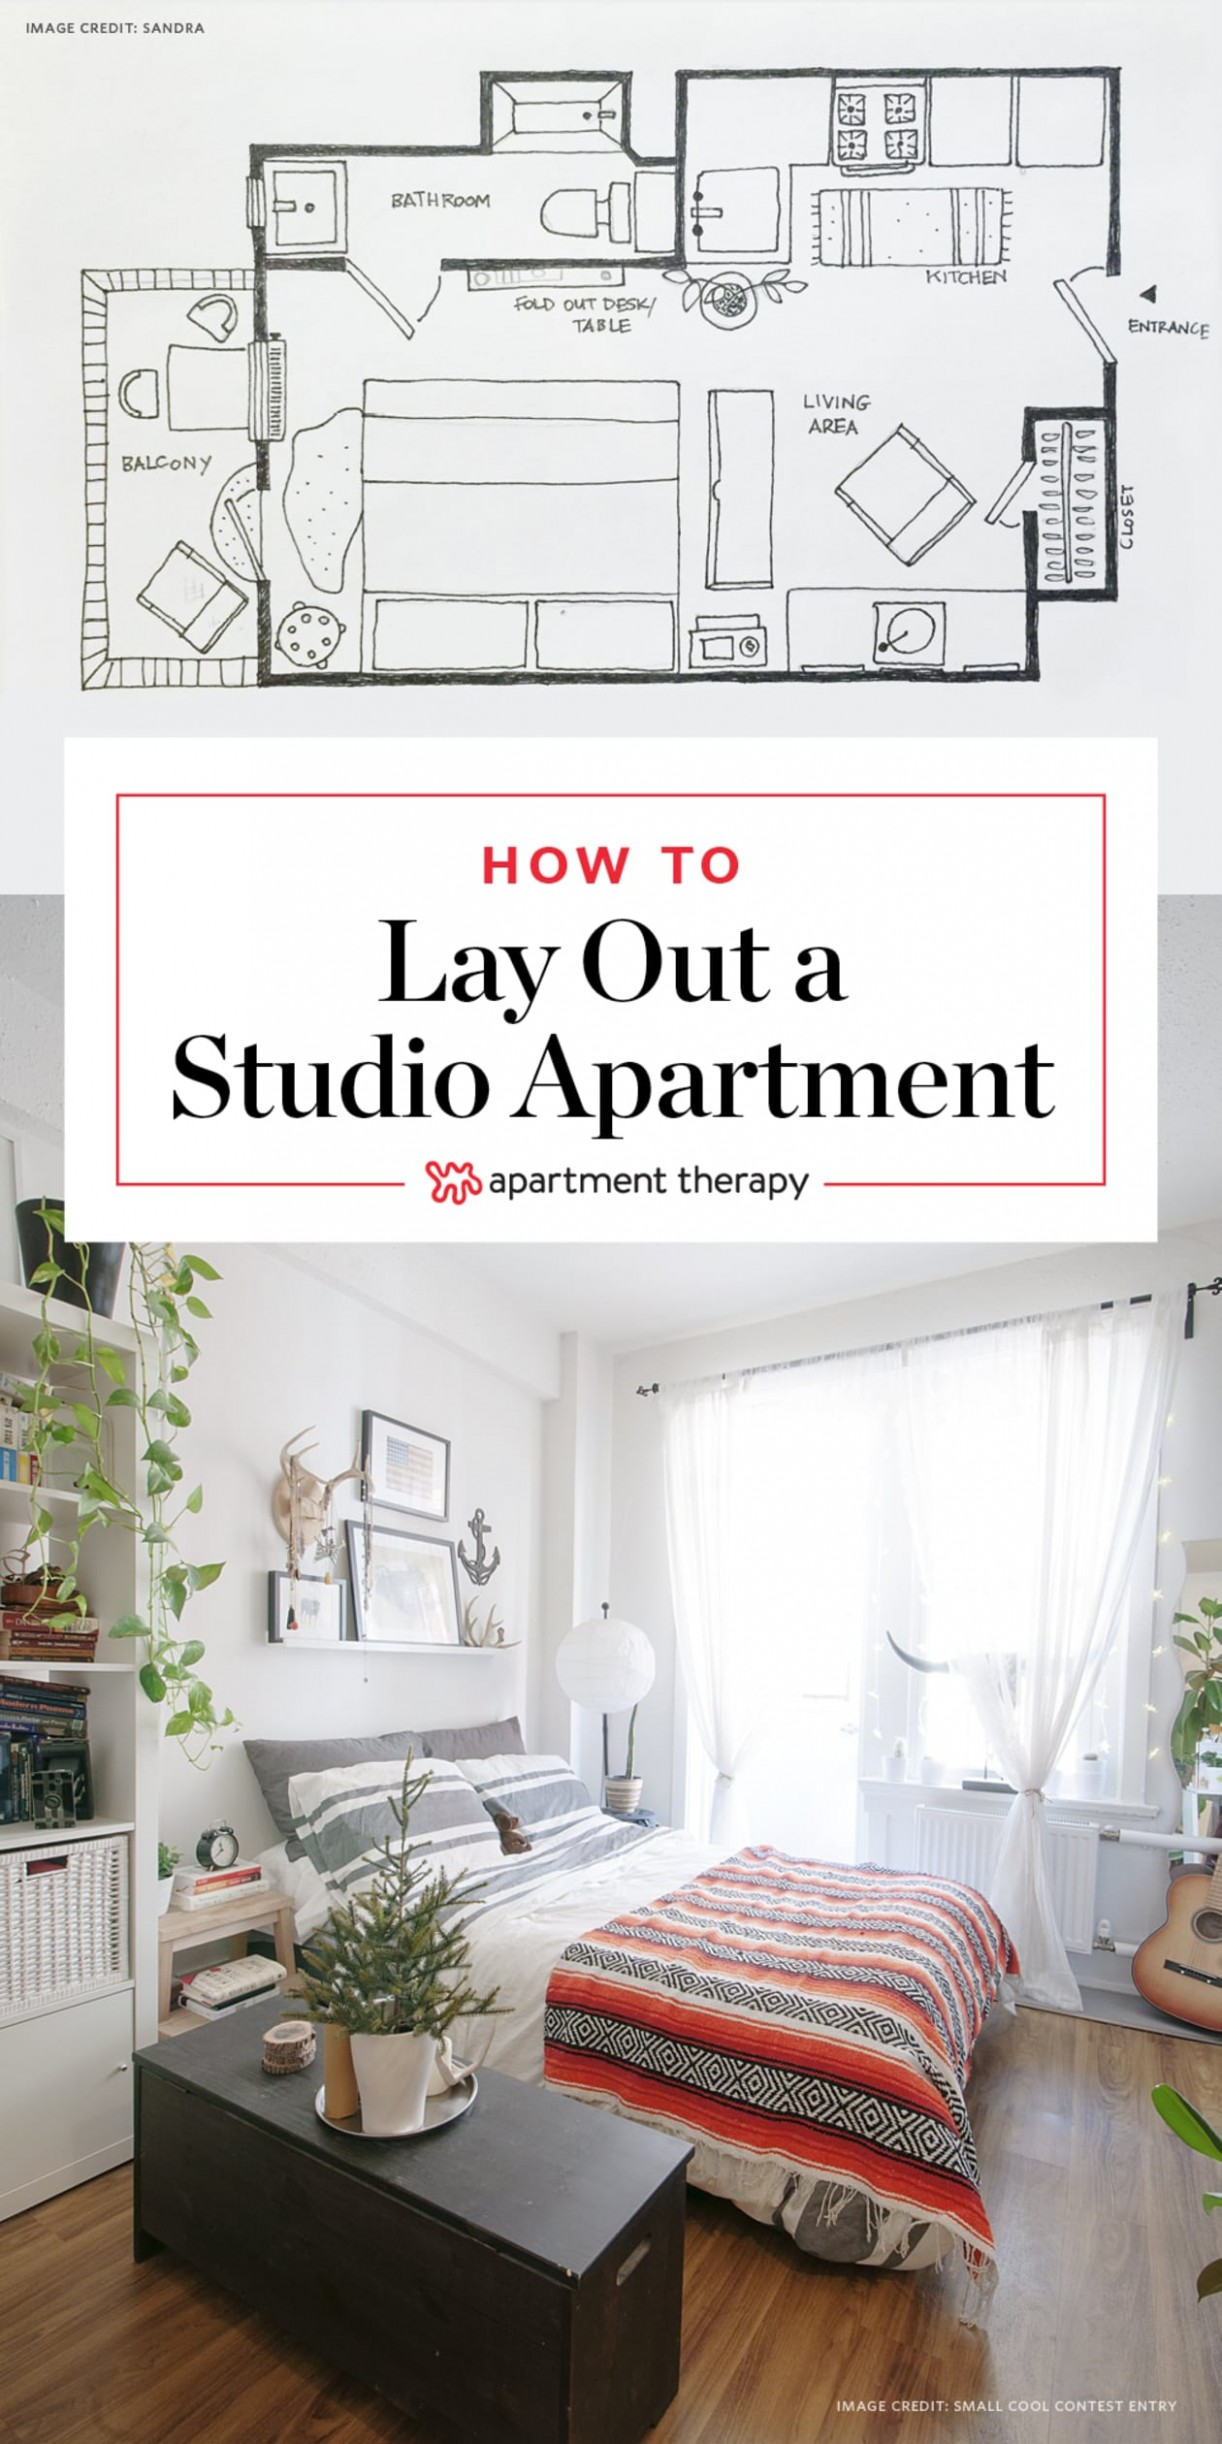 8 Ways to Lay Out a Studio Apartment  Apartment Therapy - Apartment Design Basics